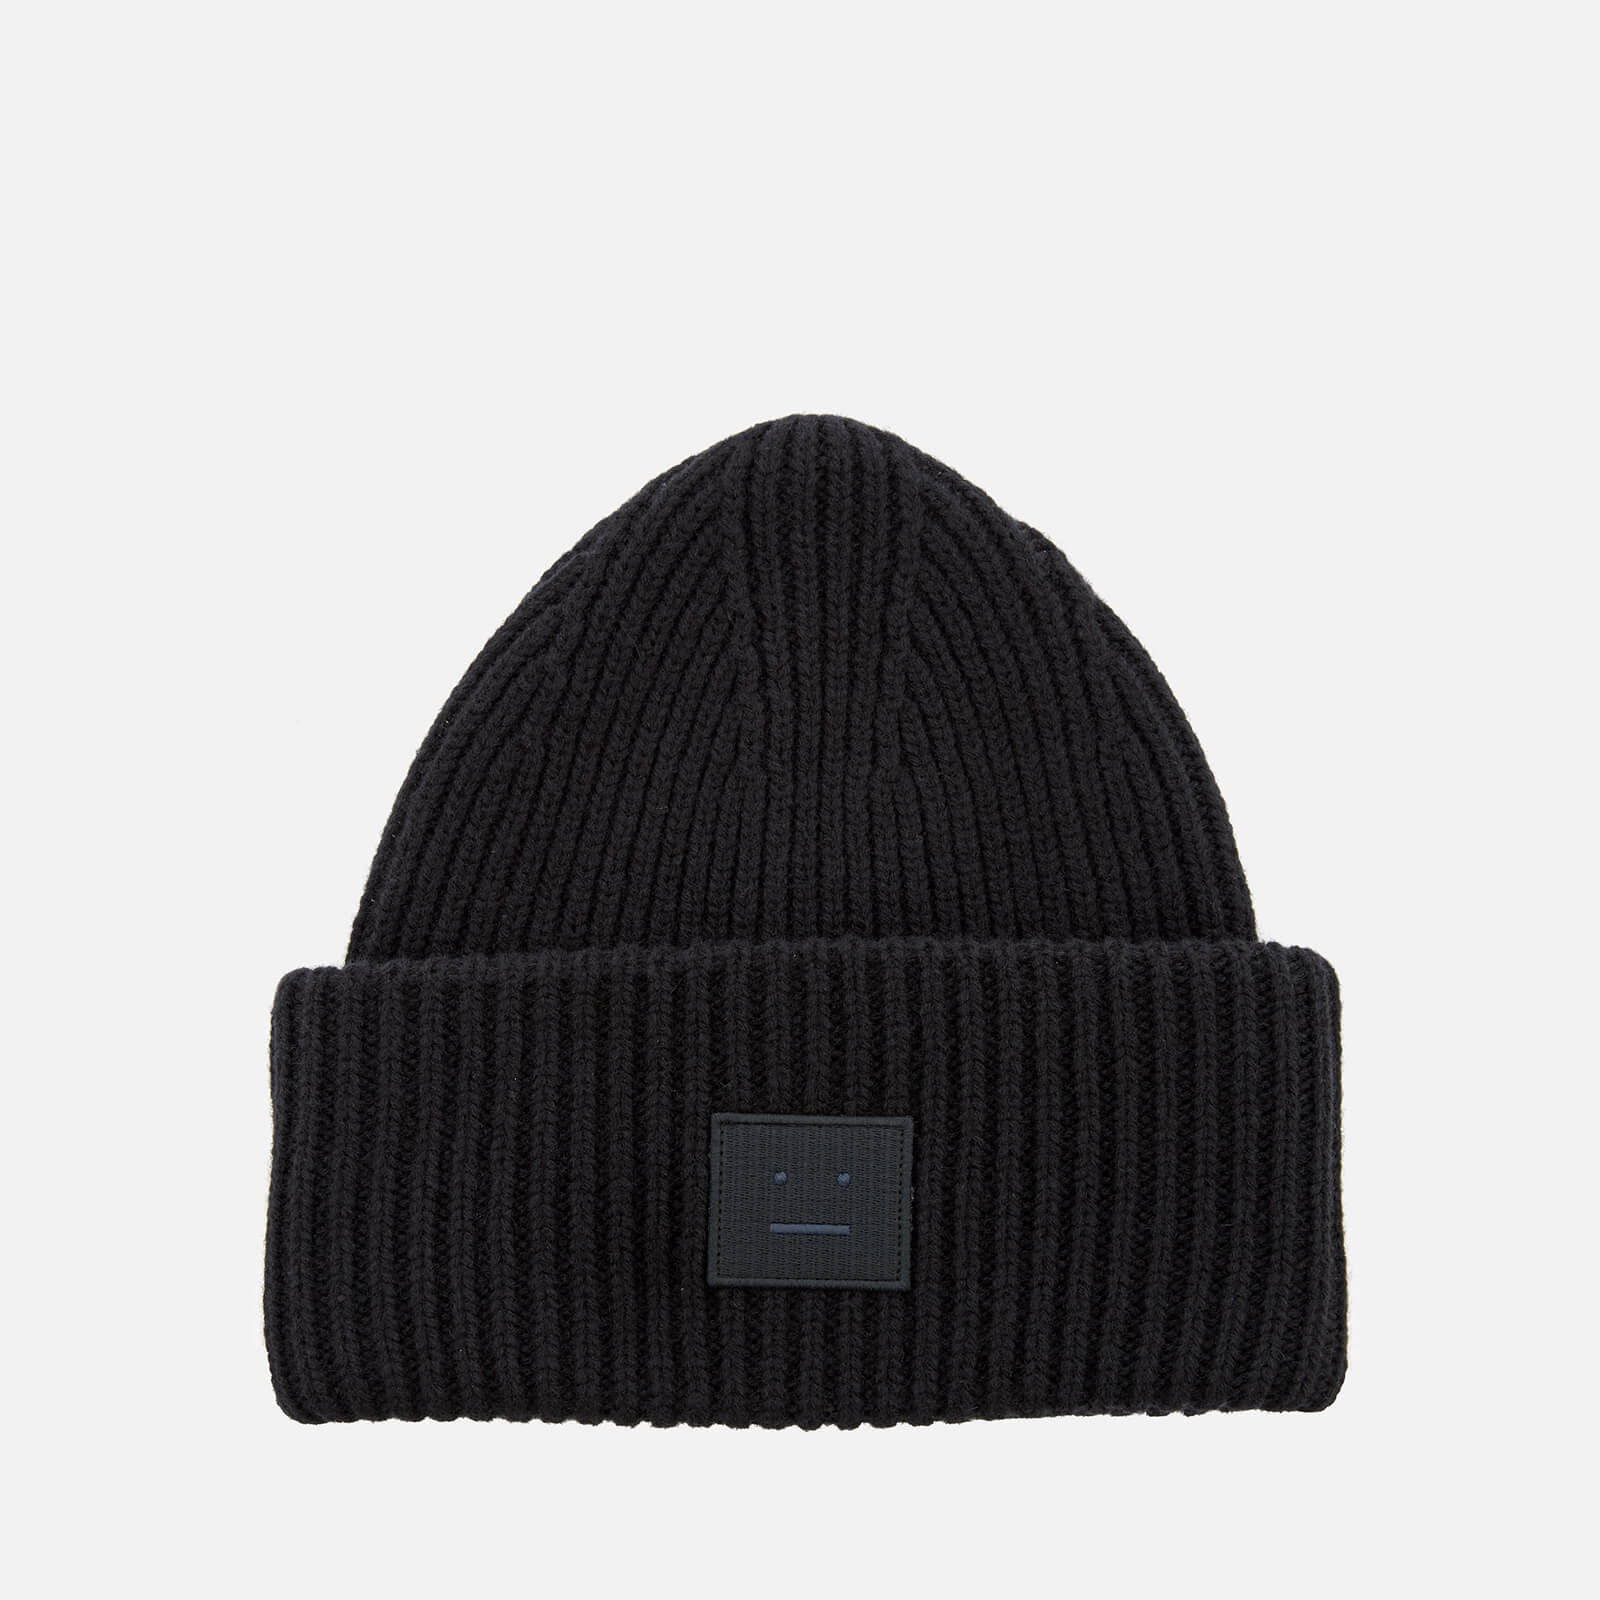 4478b33715d Acne Studios Men s Pansy L Face Beanie Hat - Black - Free UK Delivery over  £50